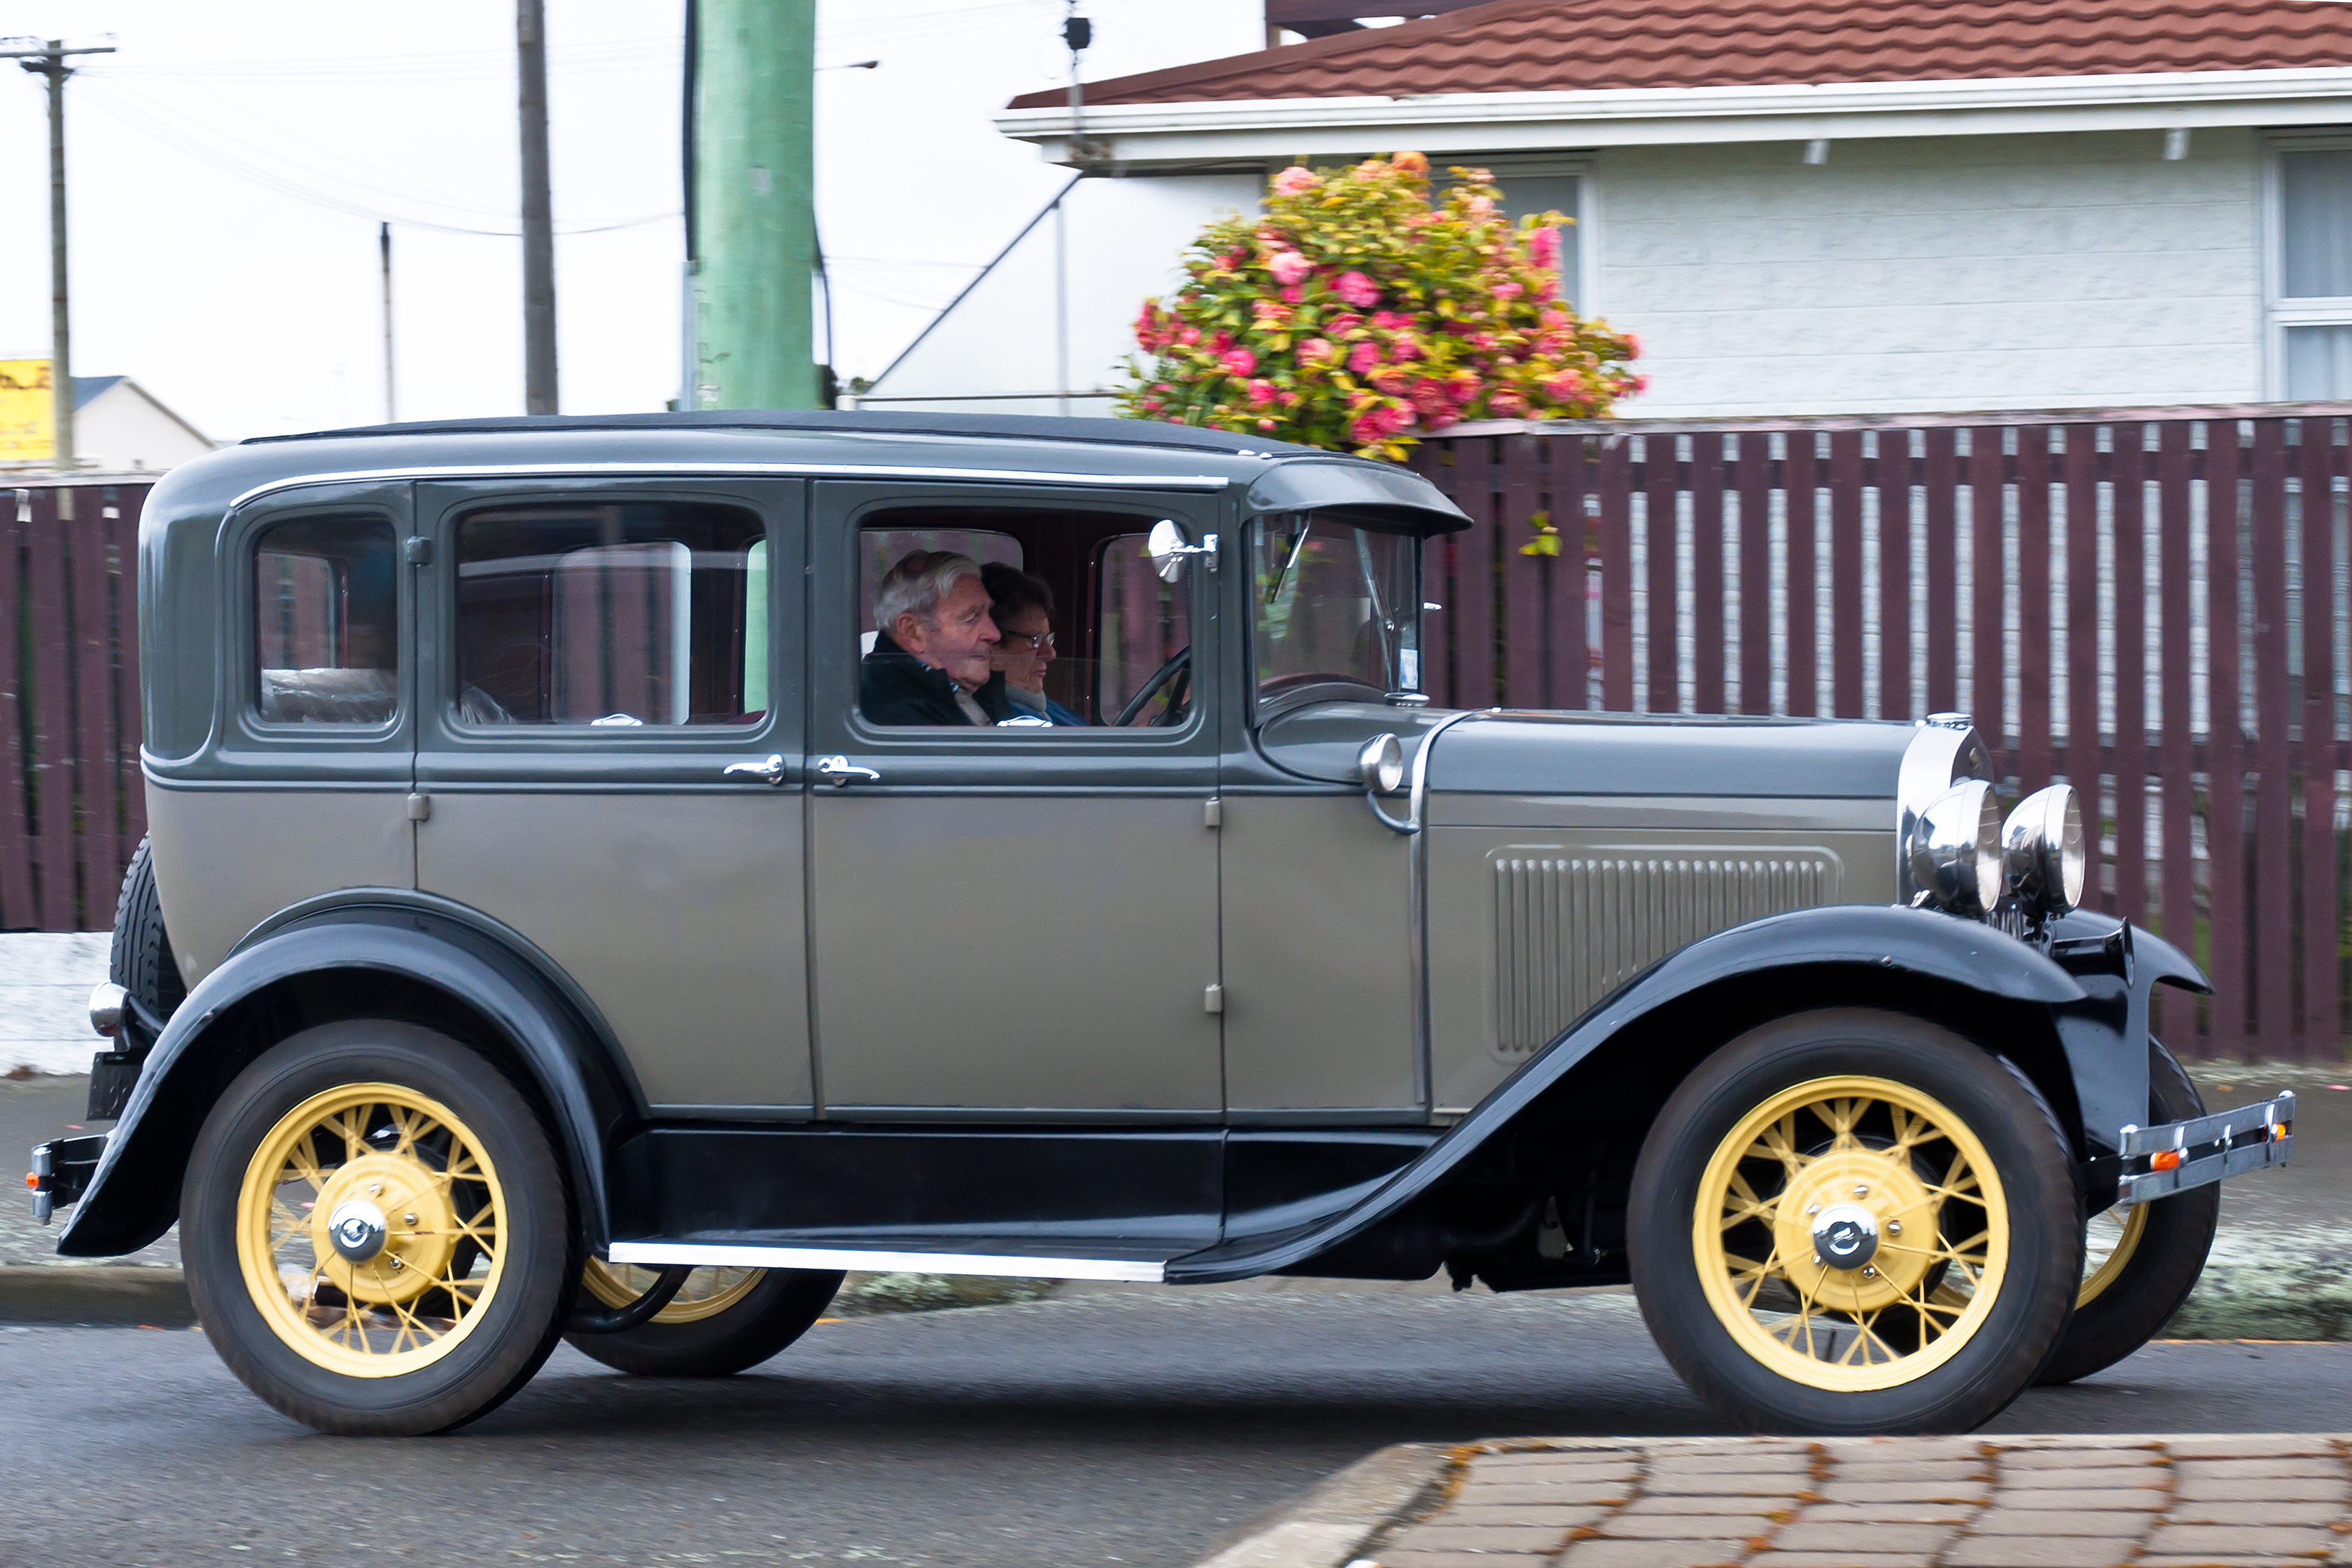 1930 FORD A, 1930, A, Car, Ford, HQ Photo